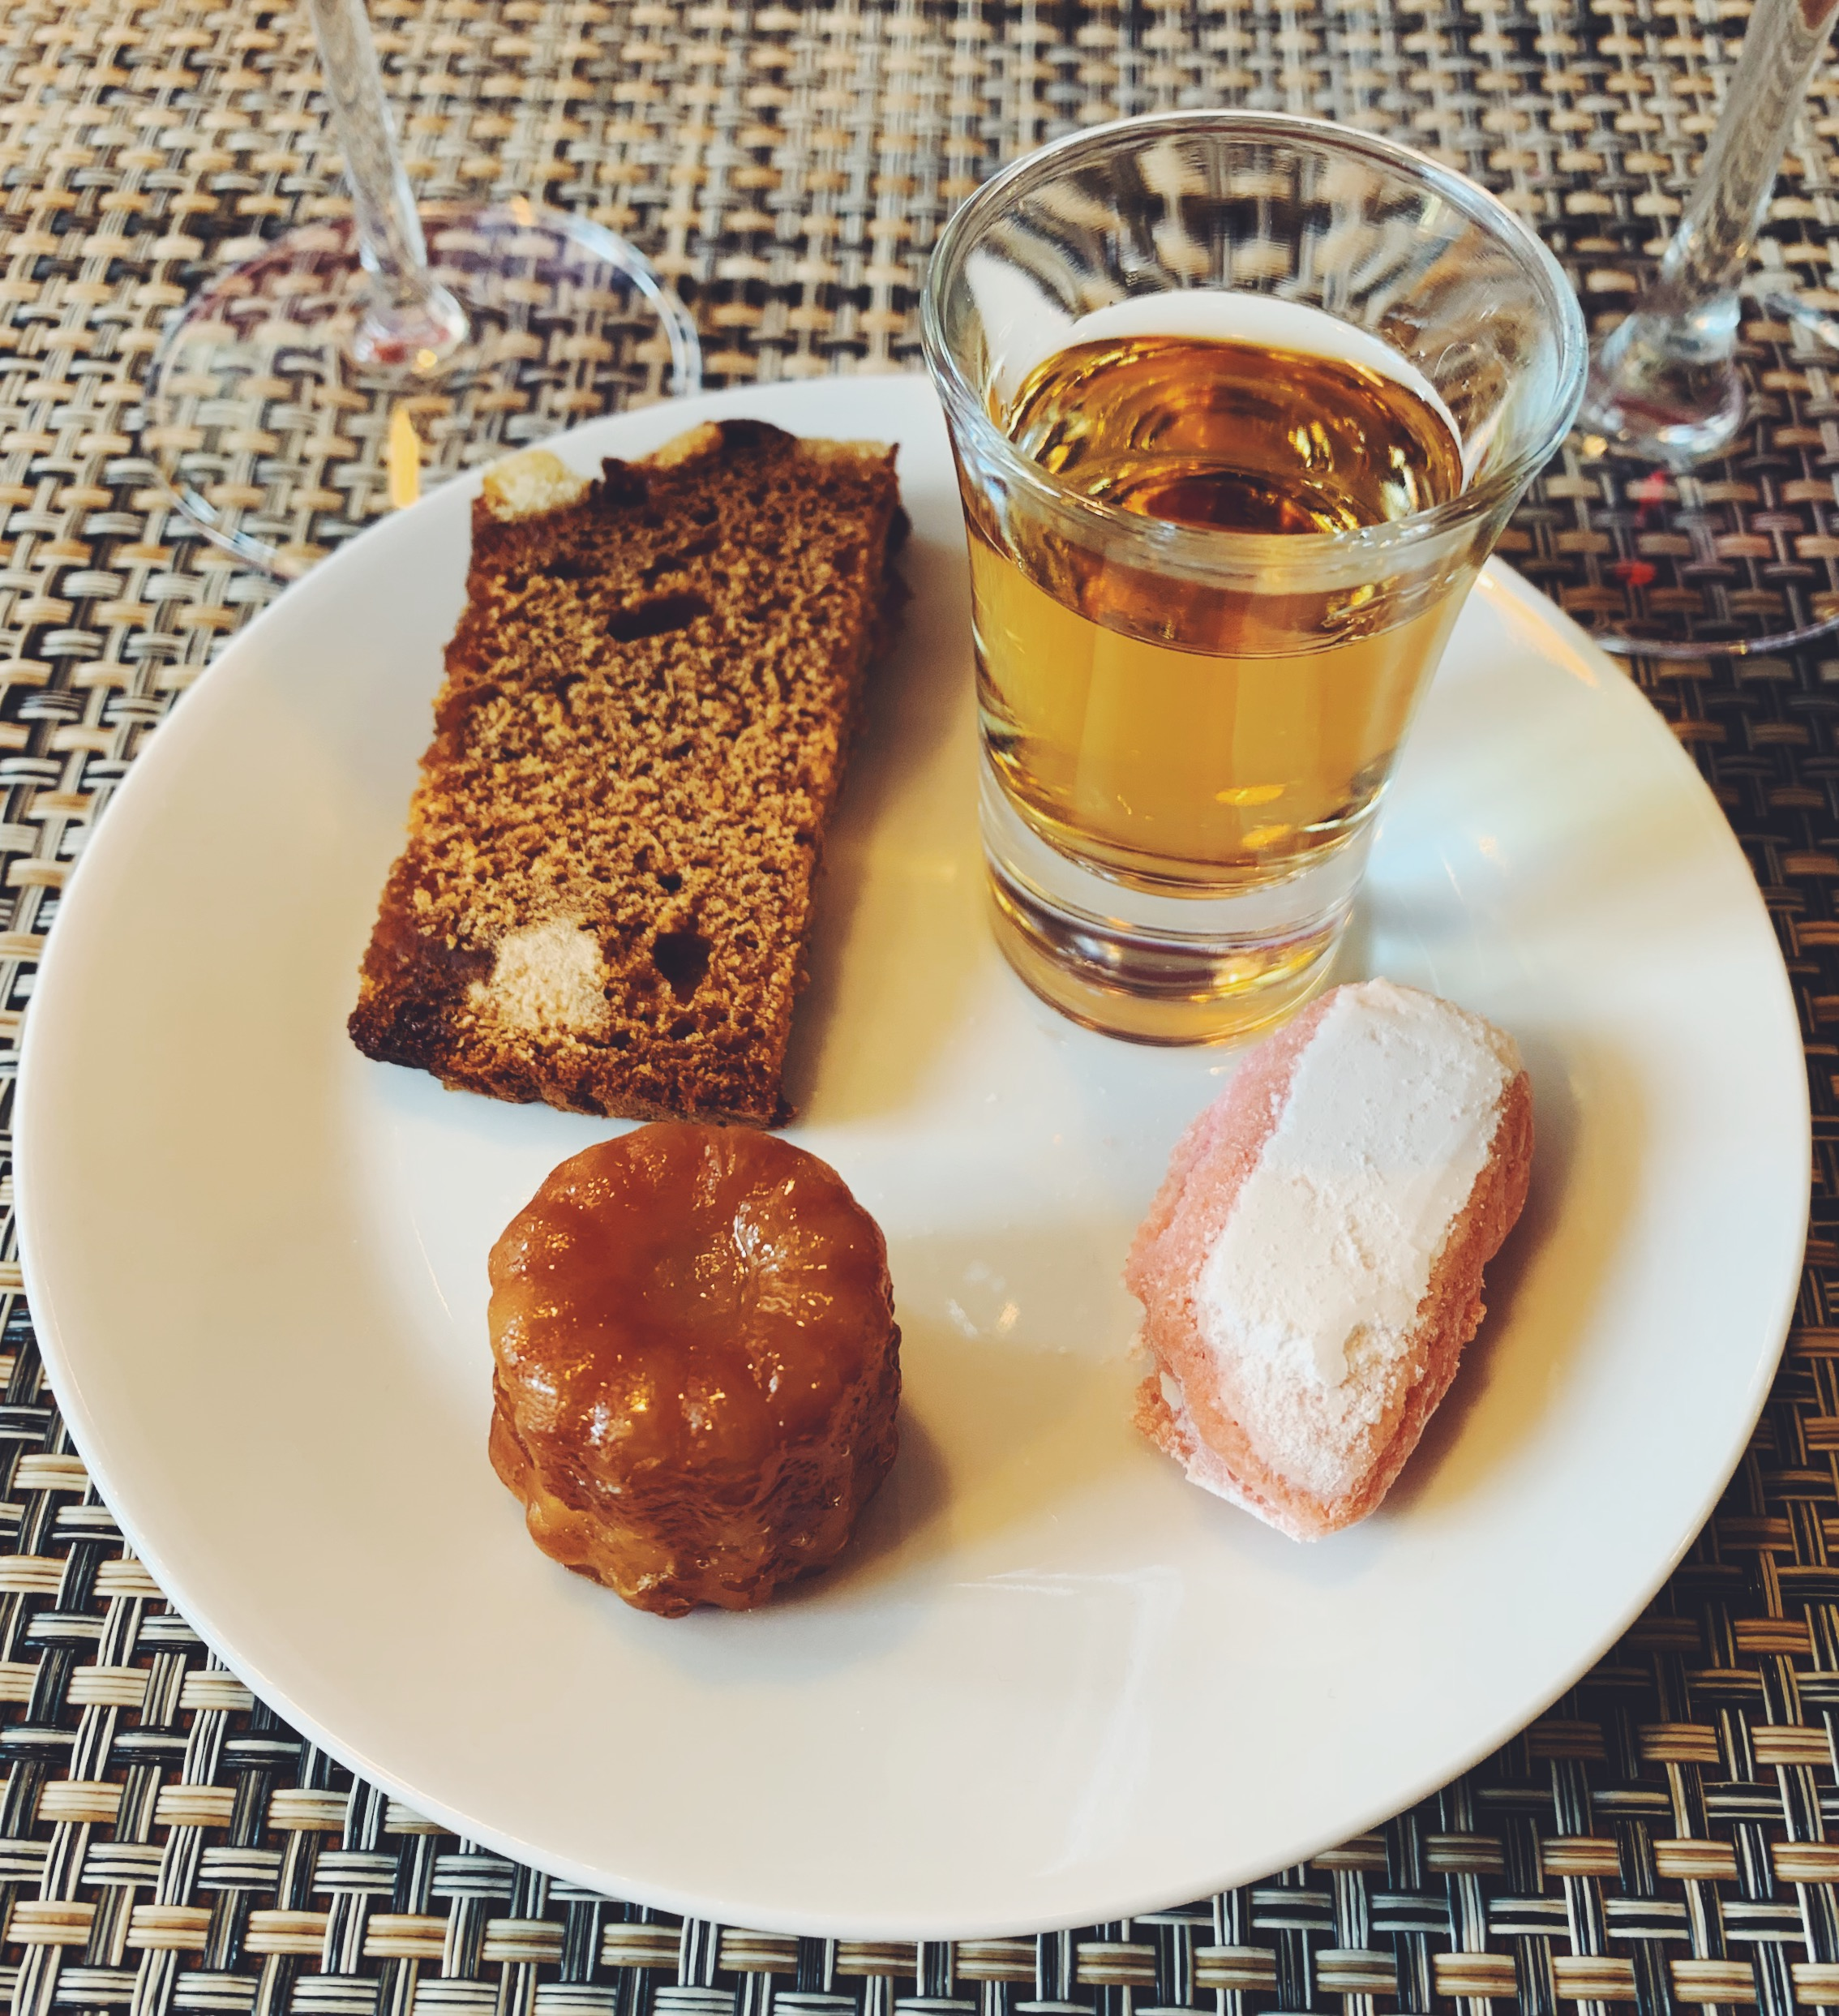 a setting of ratafia in a shot glass, a rose biscuit from reims, a canele, and a small slice of ginger bread